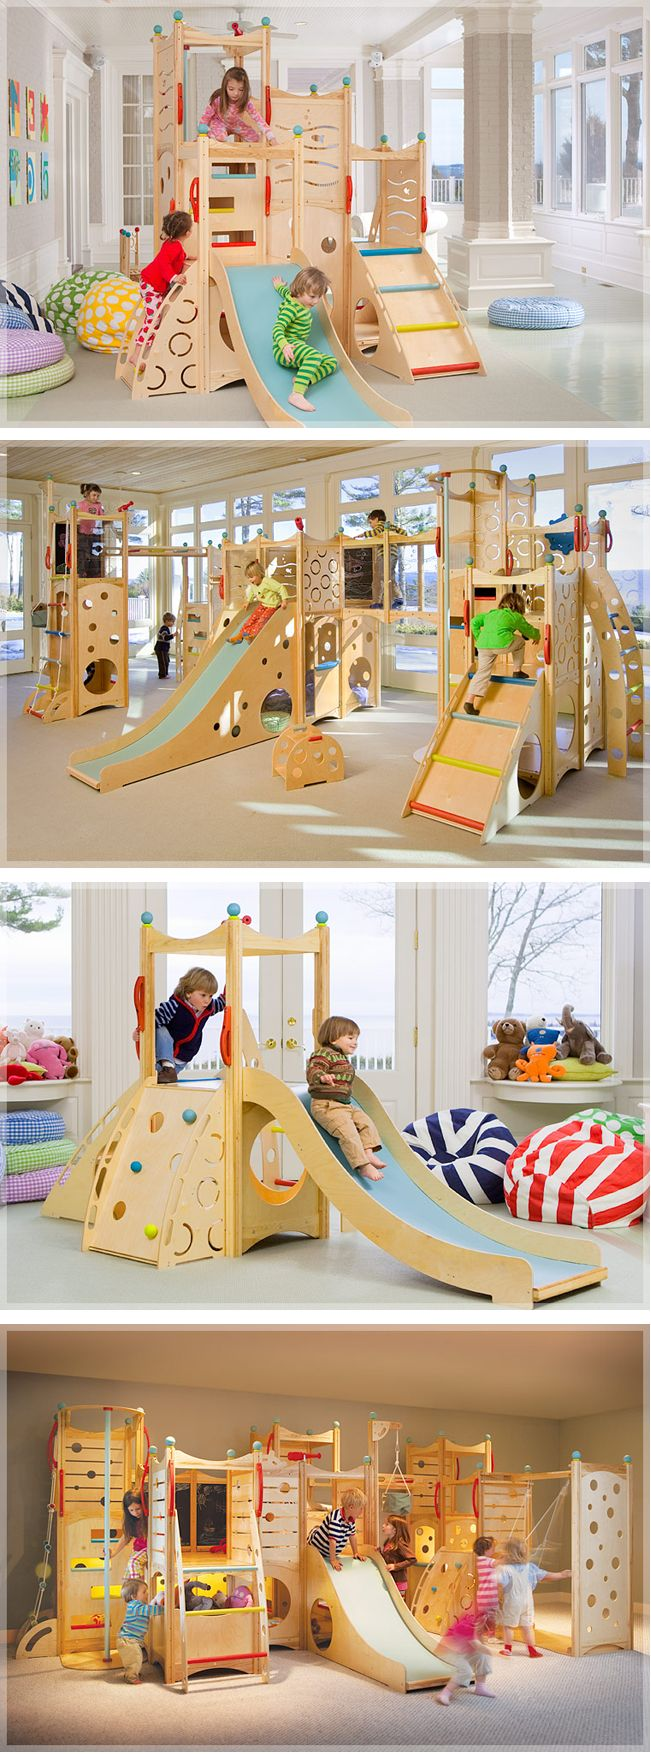 Awesome indoor play area! - Okay, this is amazing...all the